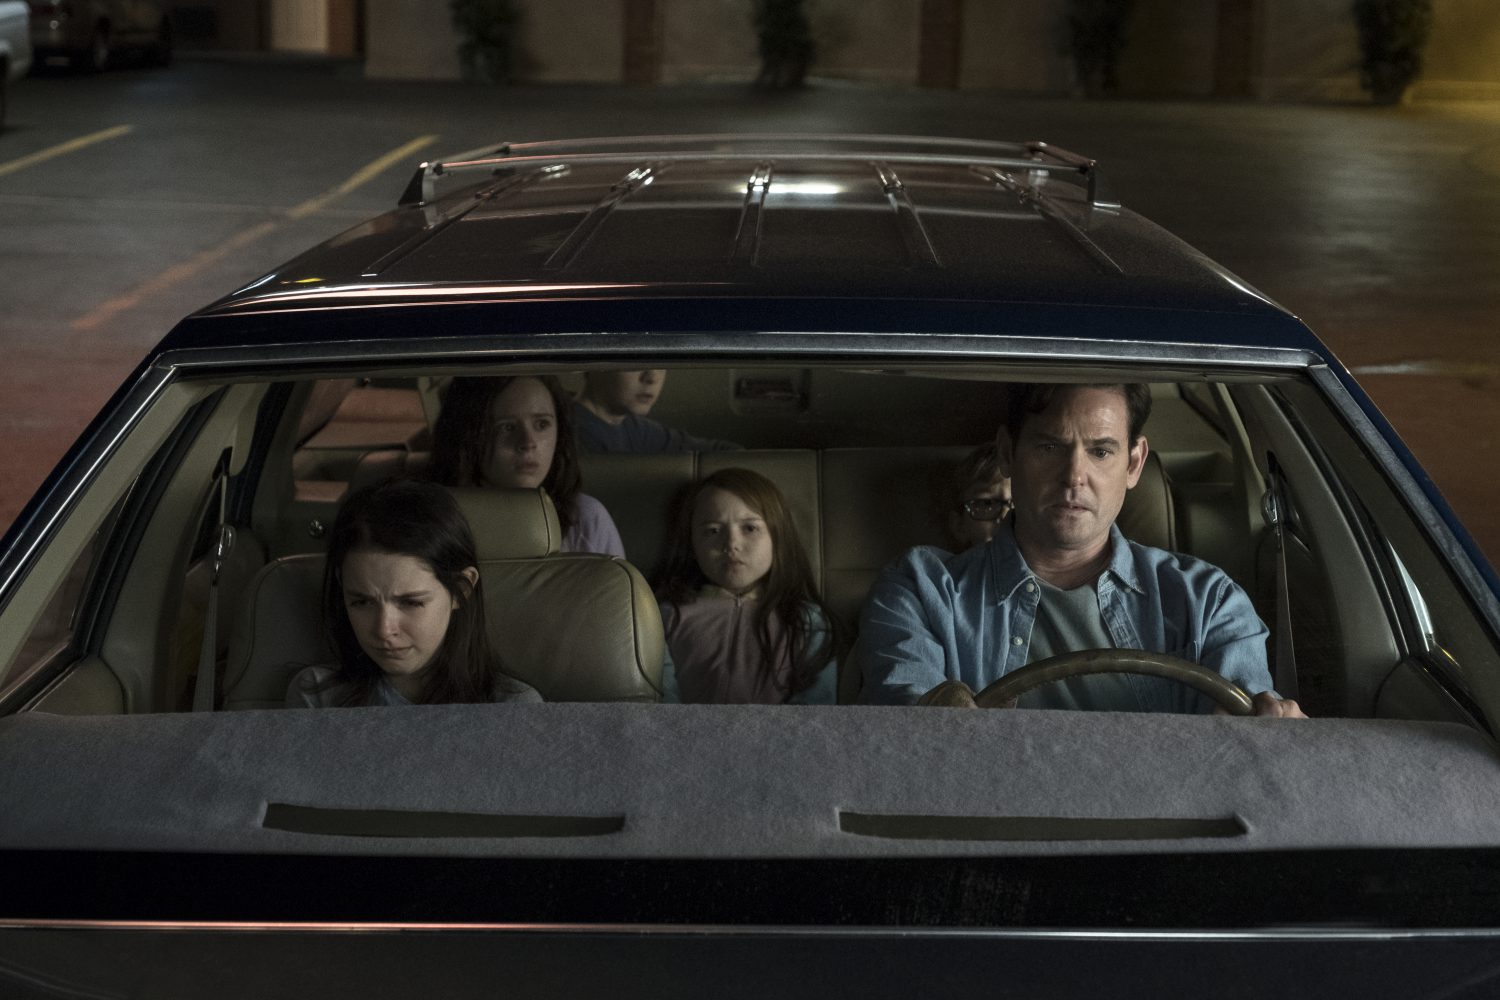 hohh 105 unit 01251r 1 21 e1539373873483 TV Review: Mike Flanagans The Haunting of Hill House Screams of Stephen King